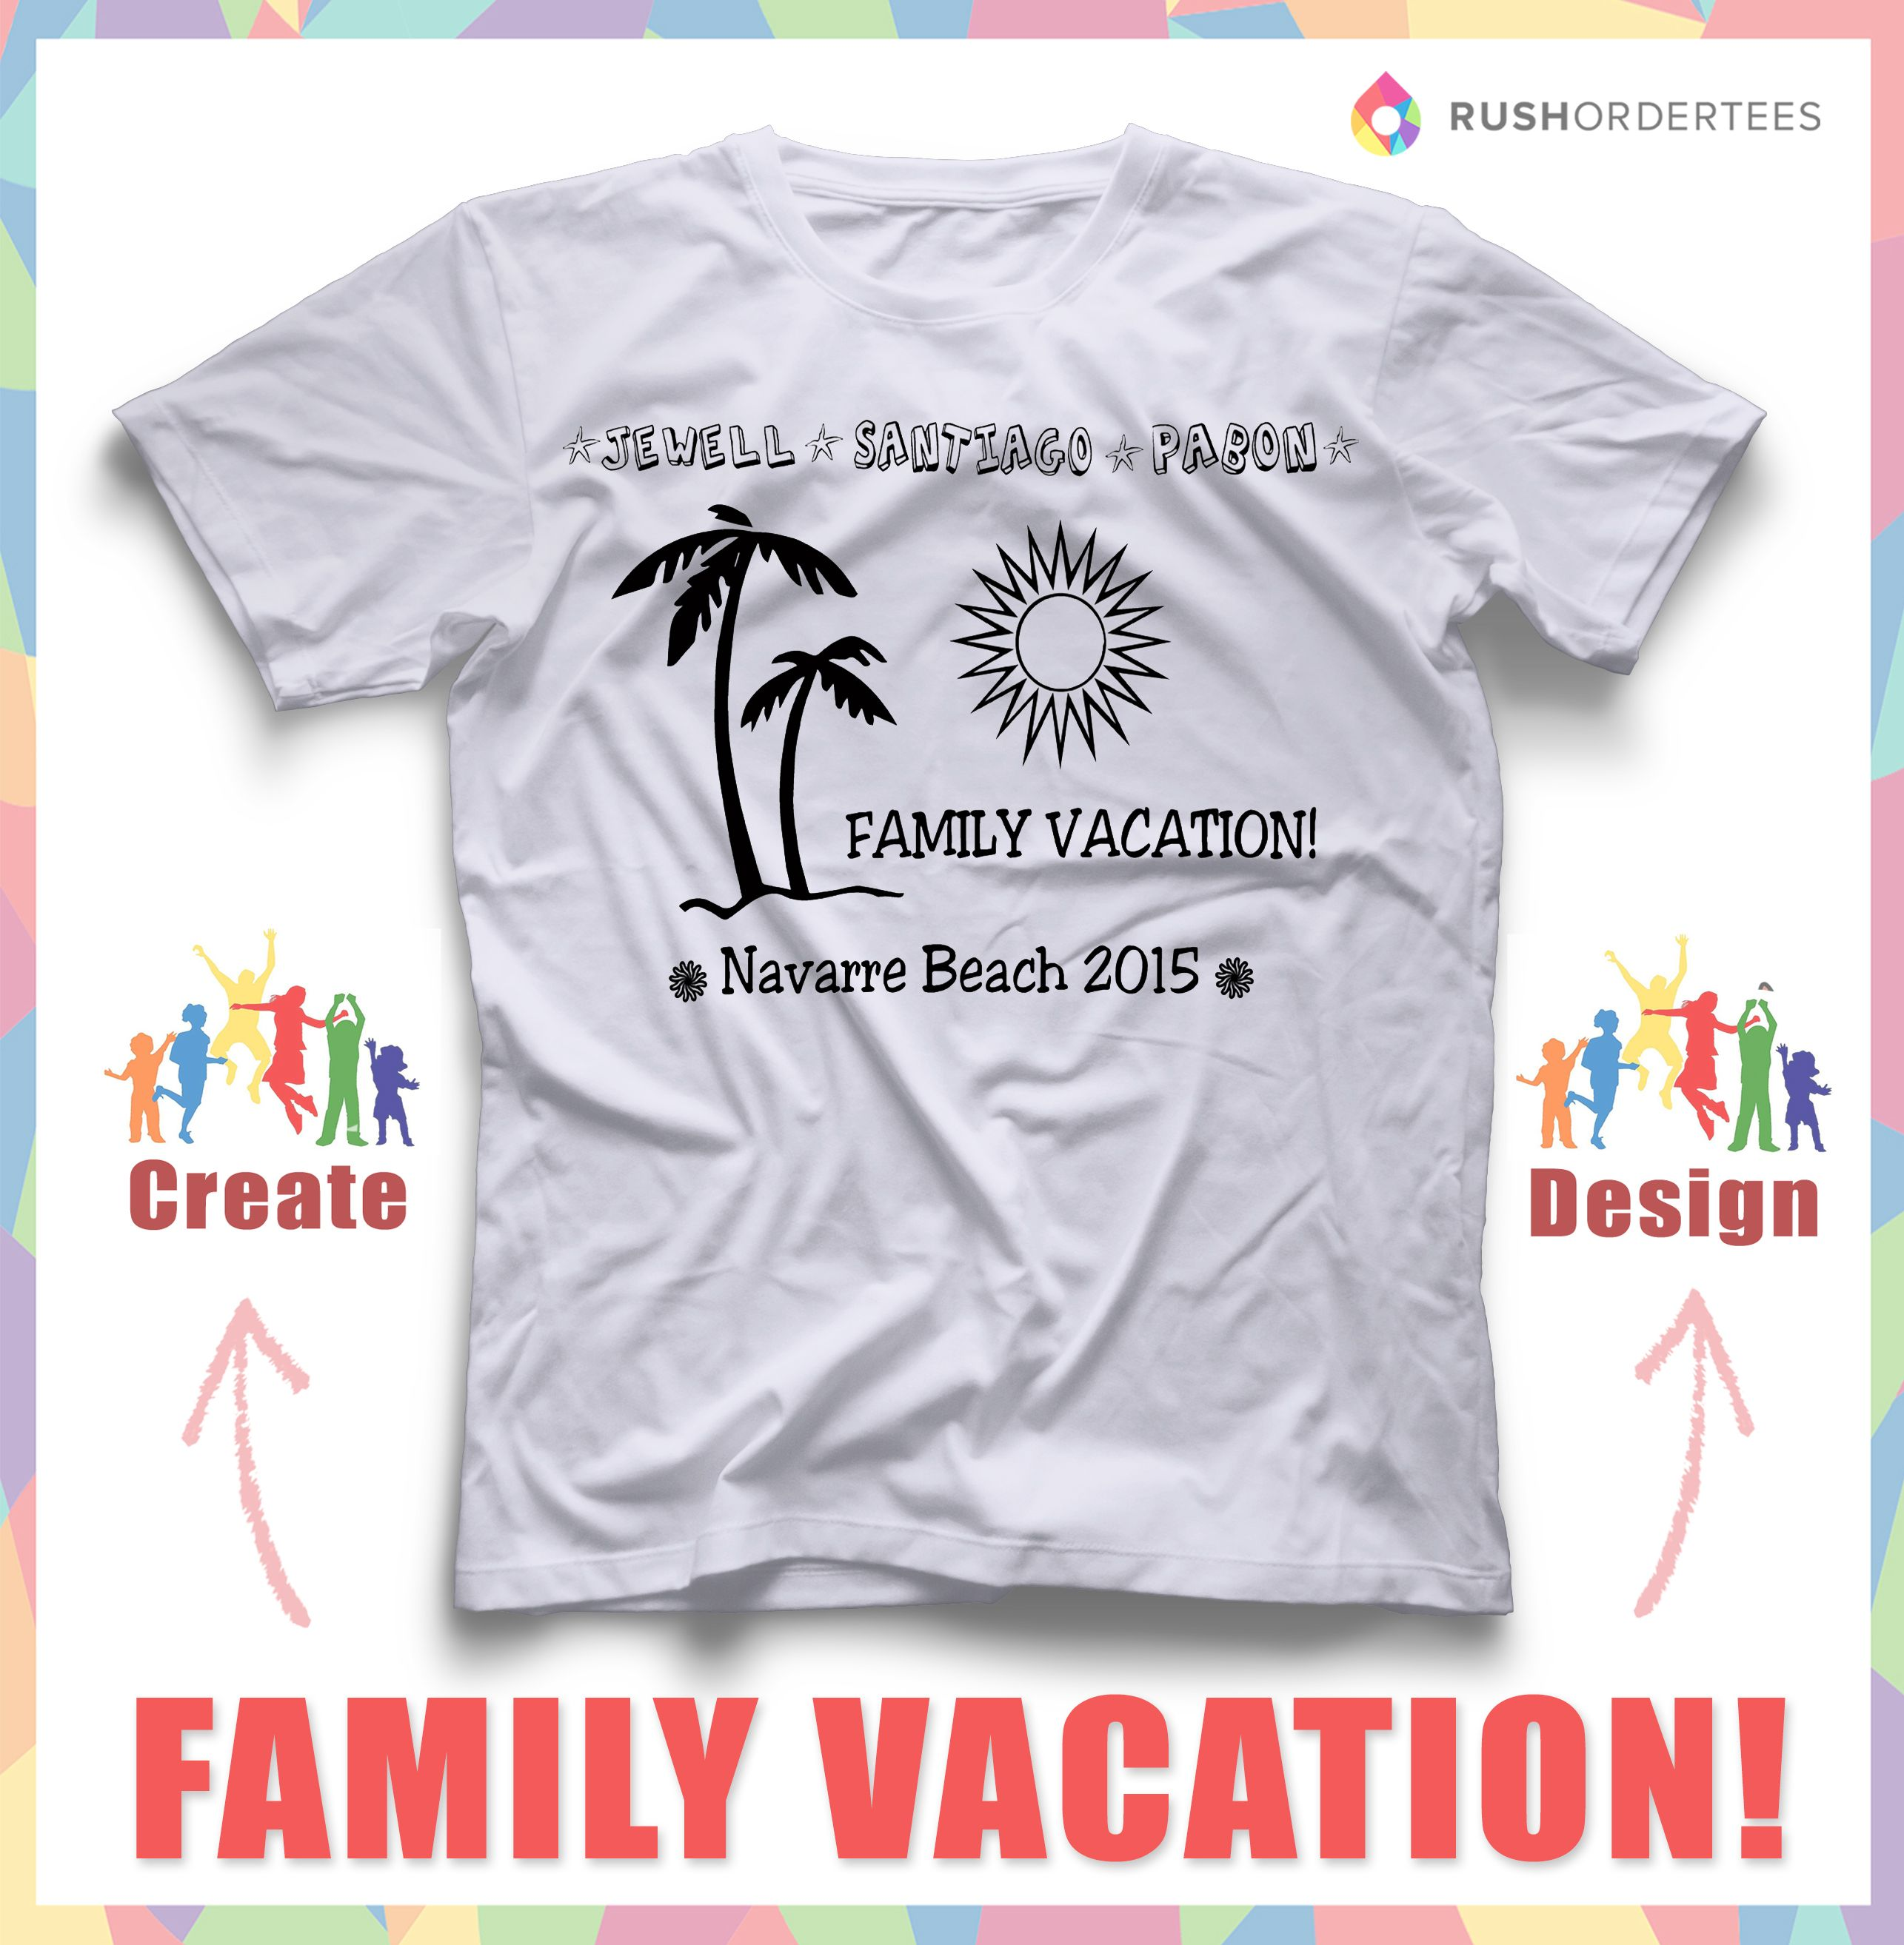 9588ae38997 Family vacation custom t-shirt design idea s! Create your own design for  your family vacation this year! www.rushordertees.com  FamilyTshirts